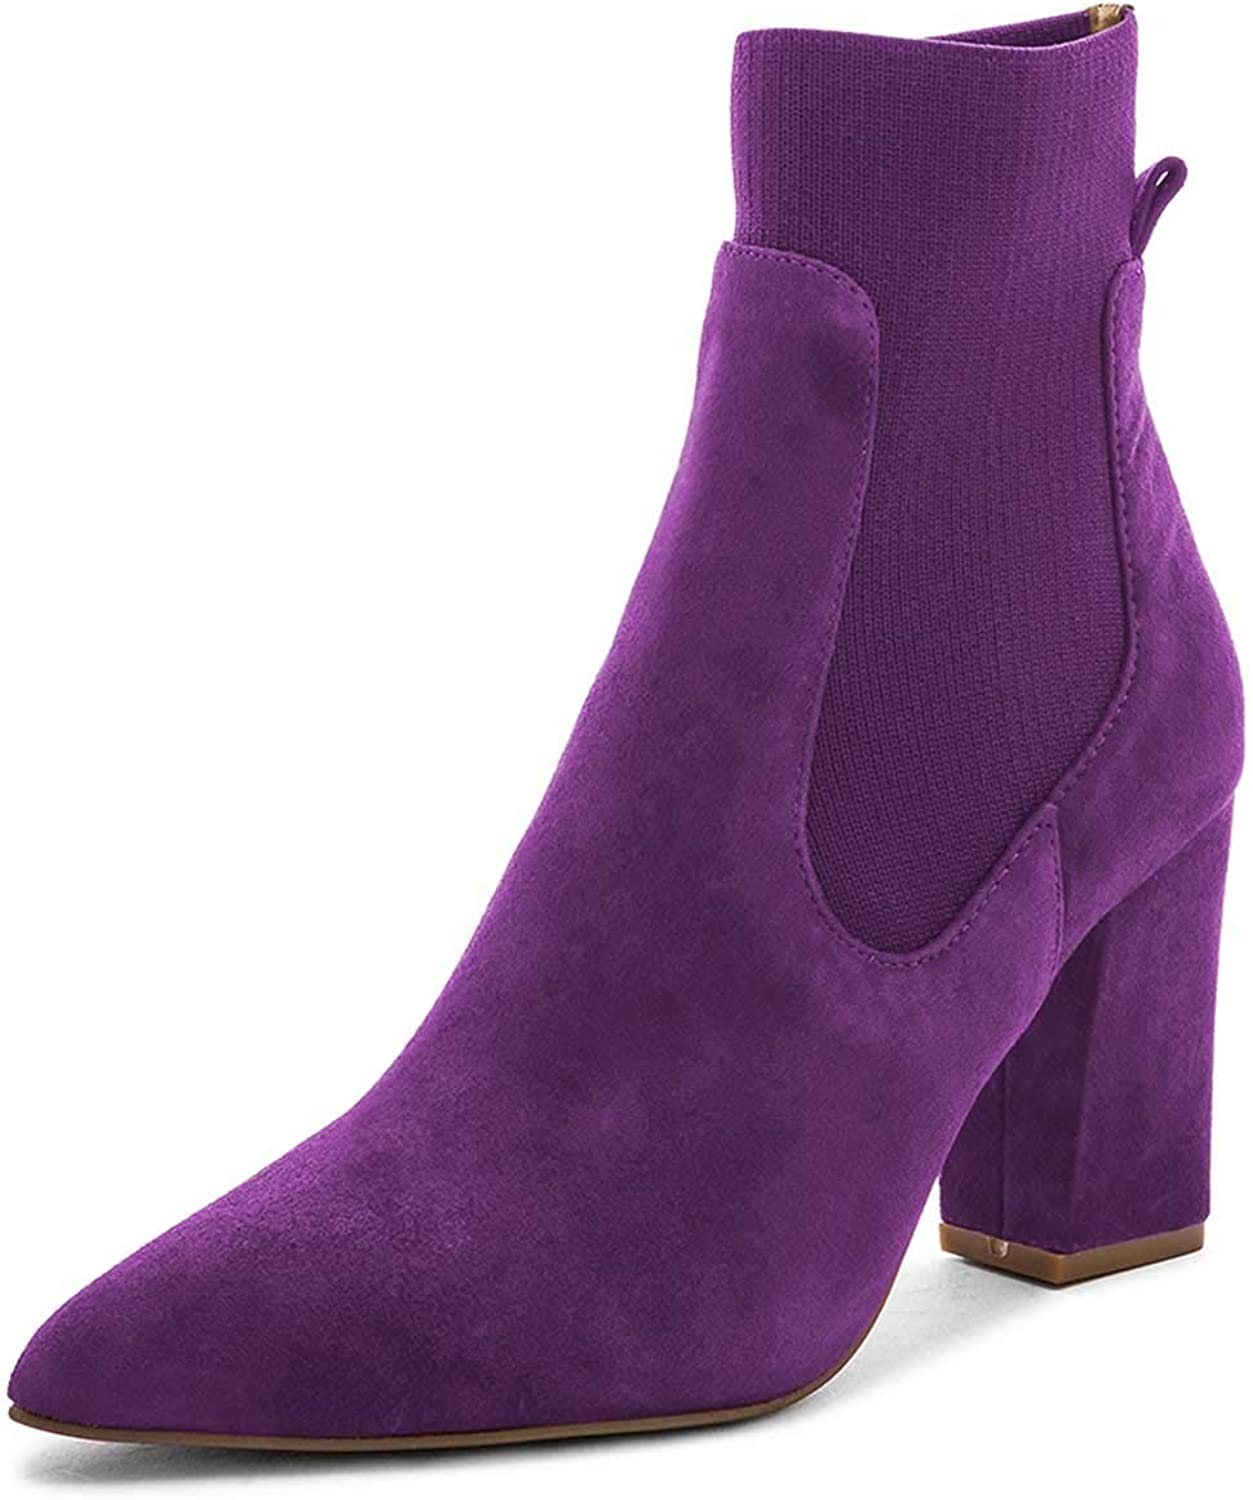 FSJ Women Pointed Toe Chunky High Heel Stretch Pull On Ankle Boots Comfy Winter Booties Size 4-15 US